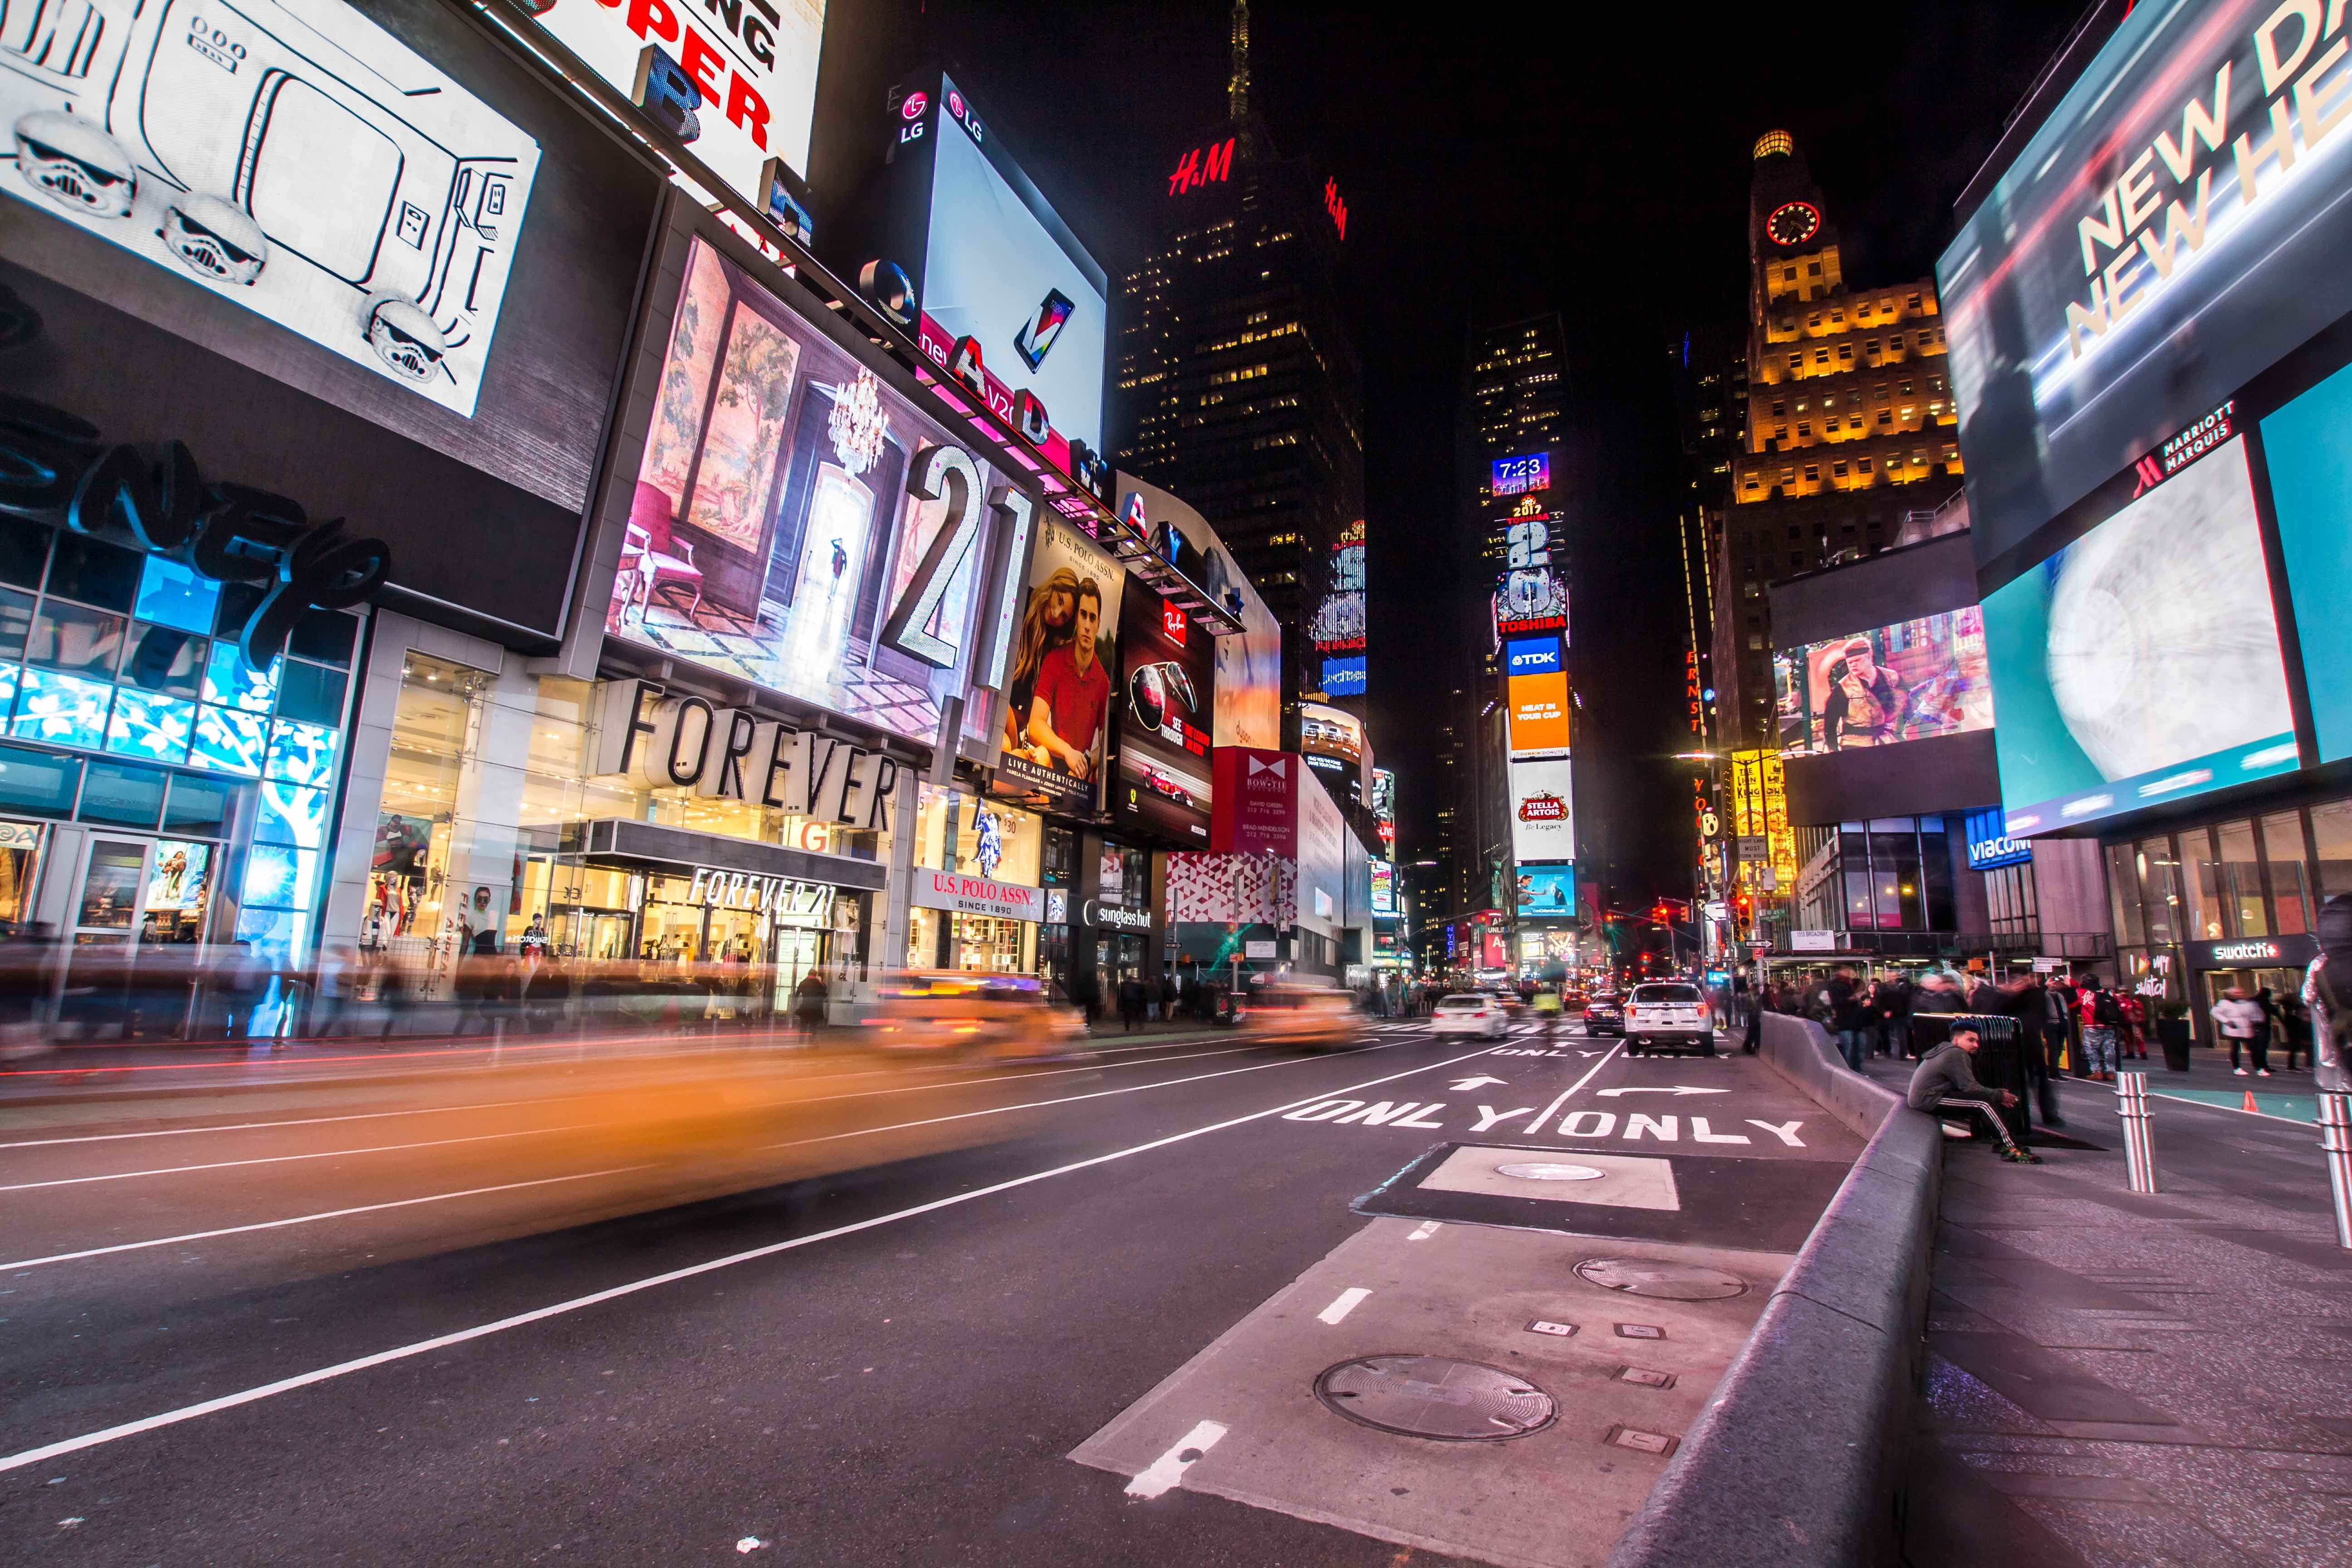 Time lapse shot of cars driving through Times Square, New York at night-time